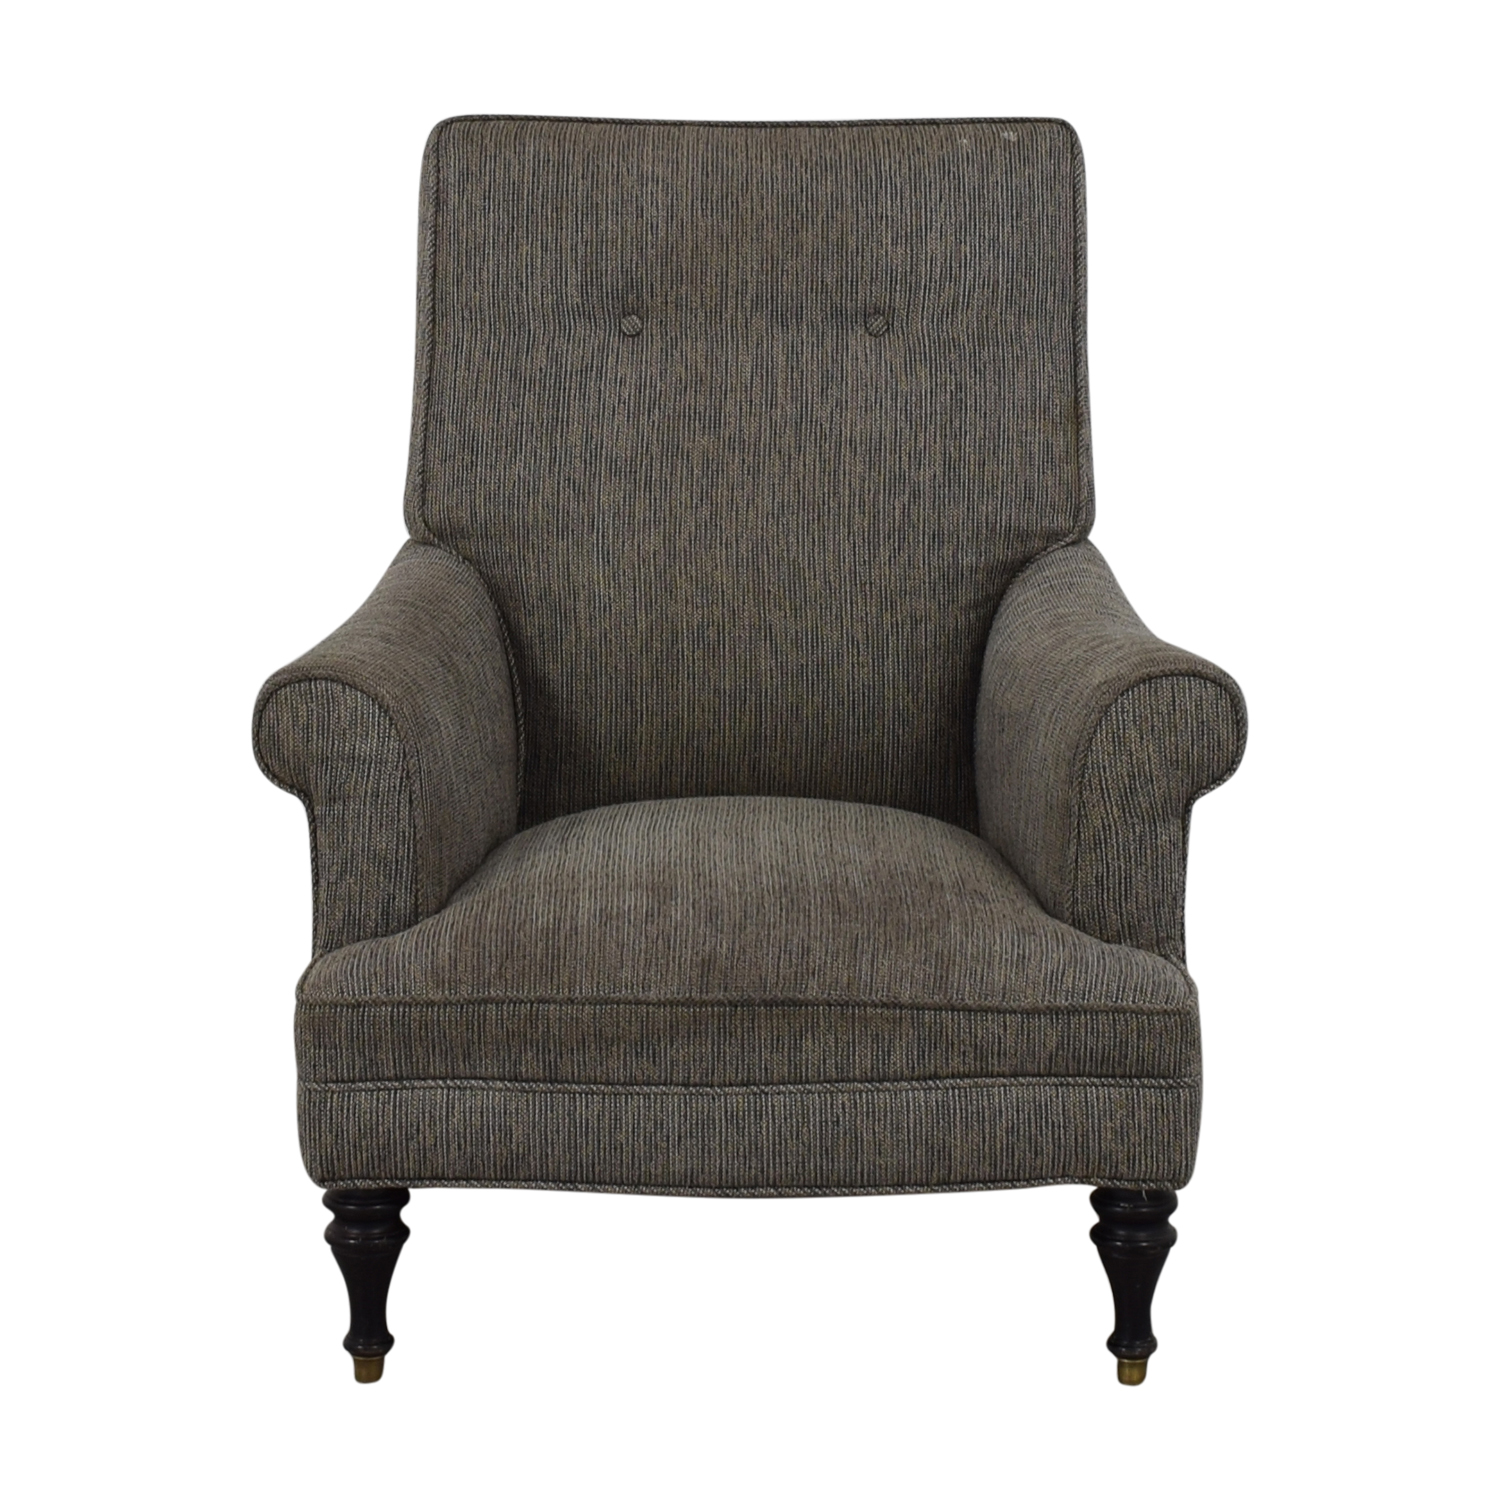 Restoration Hardware Restoration Hardware Reupholstered Armchair second hand